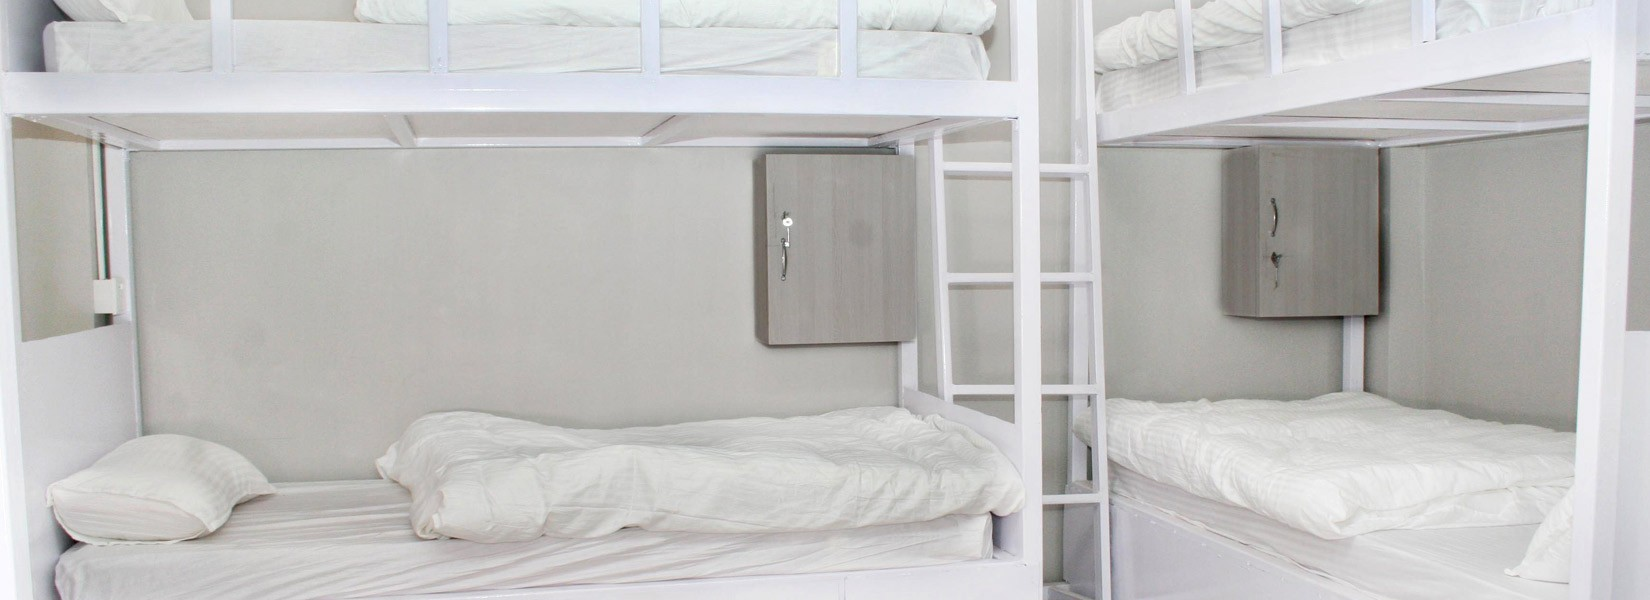 Dormitory Bed Room